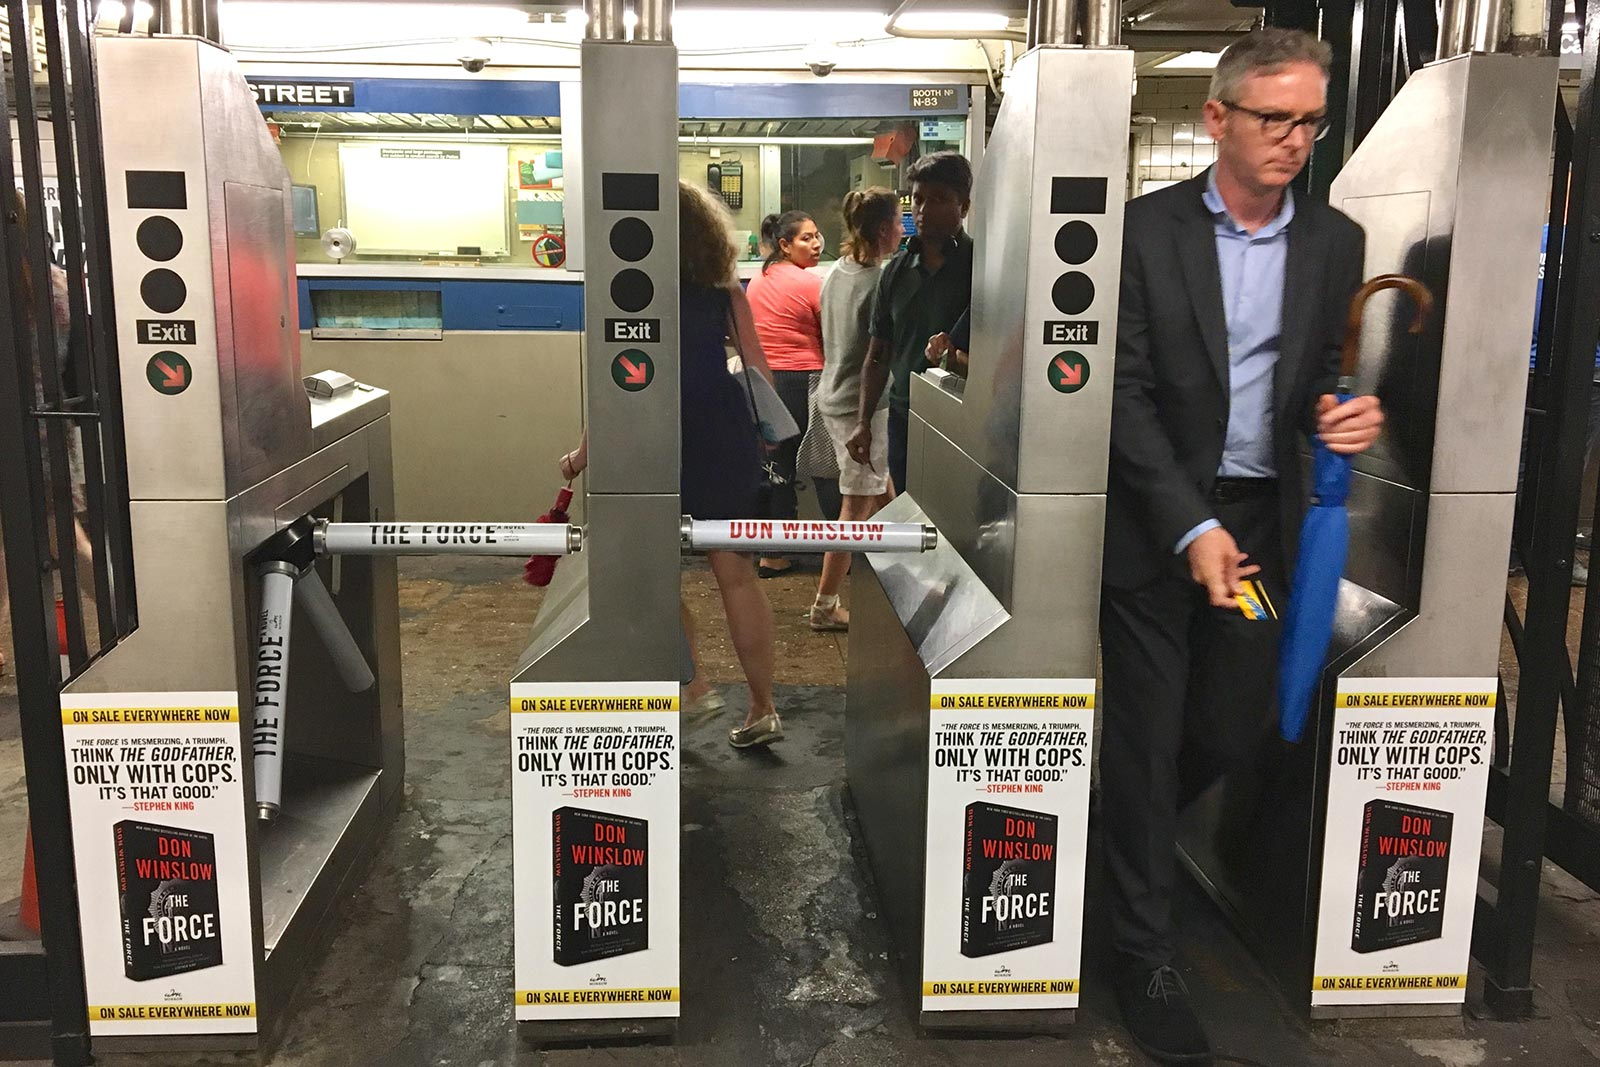 Don Winslow - The Force - W4th Station - Turnstiles